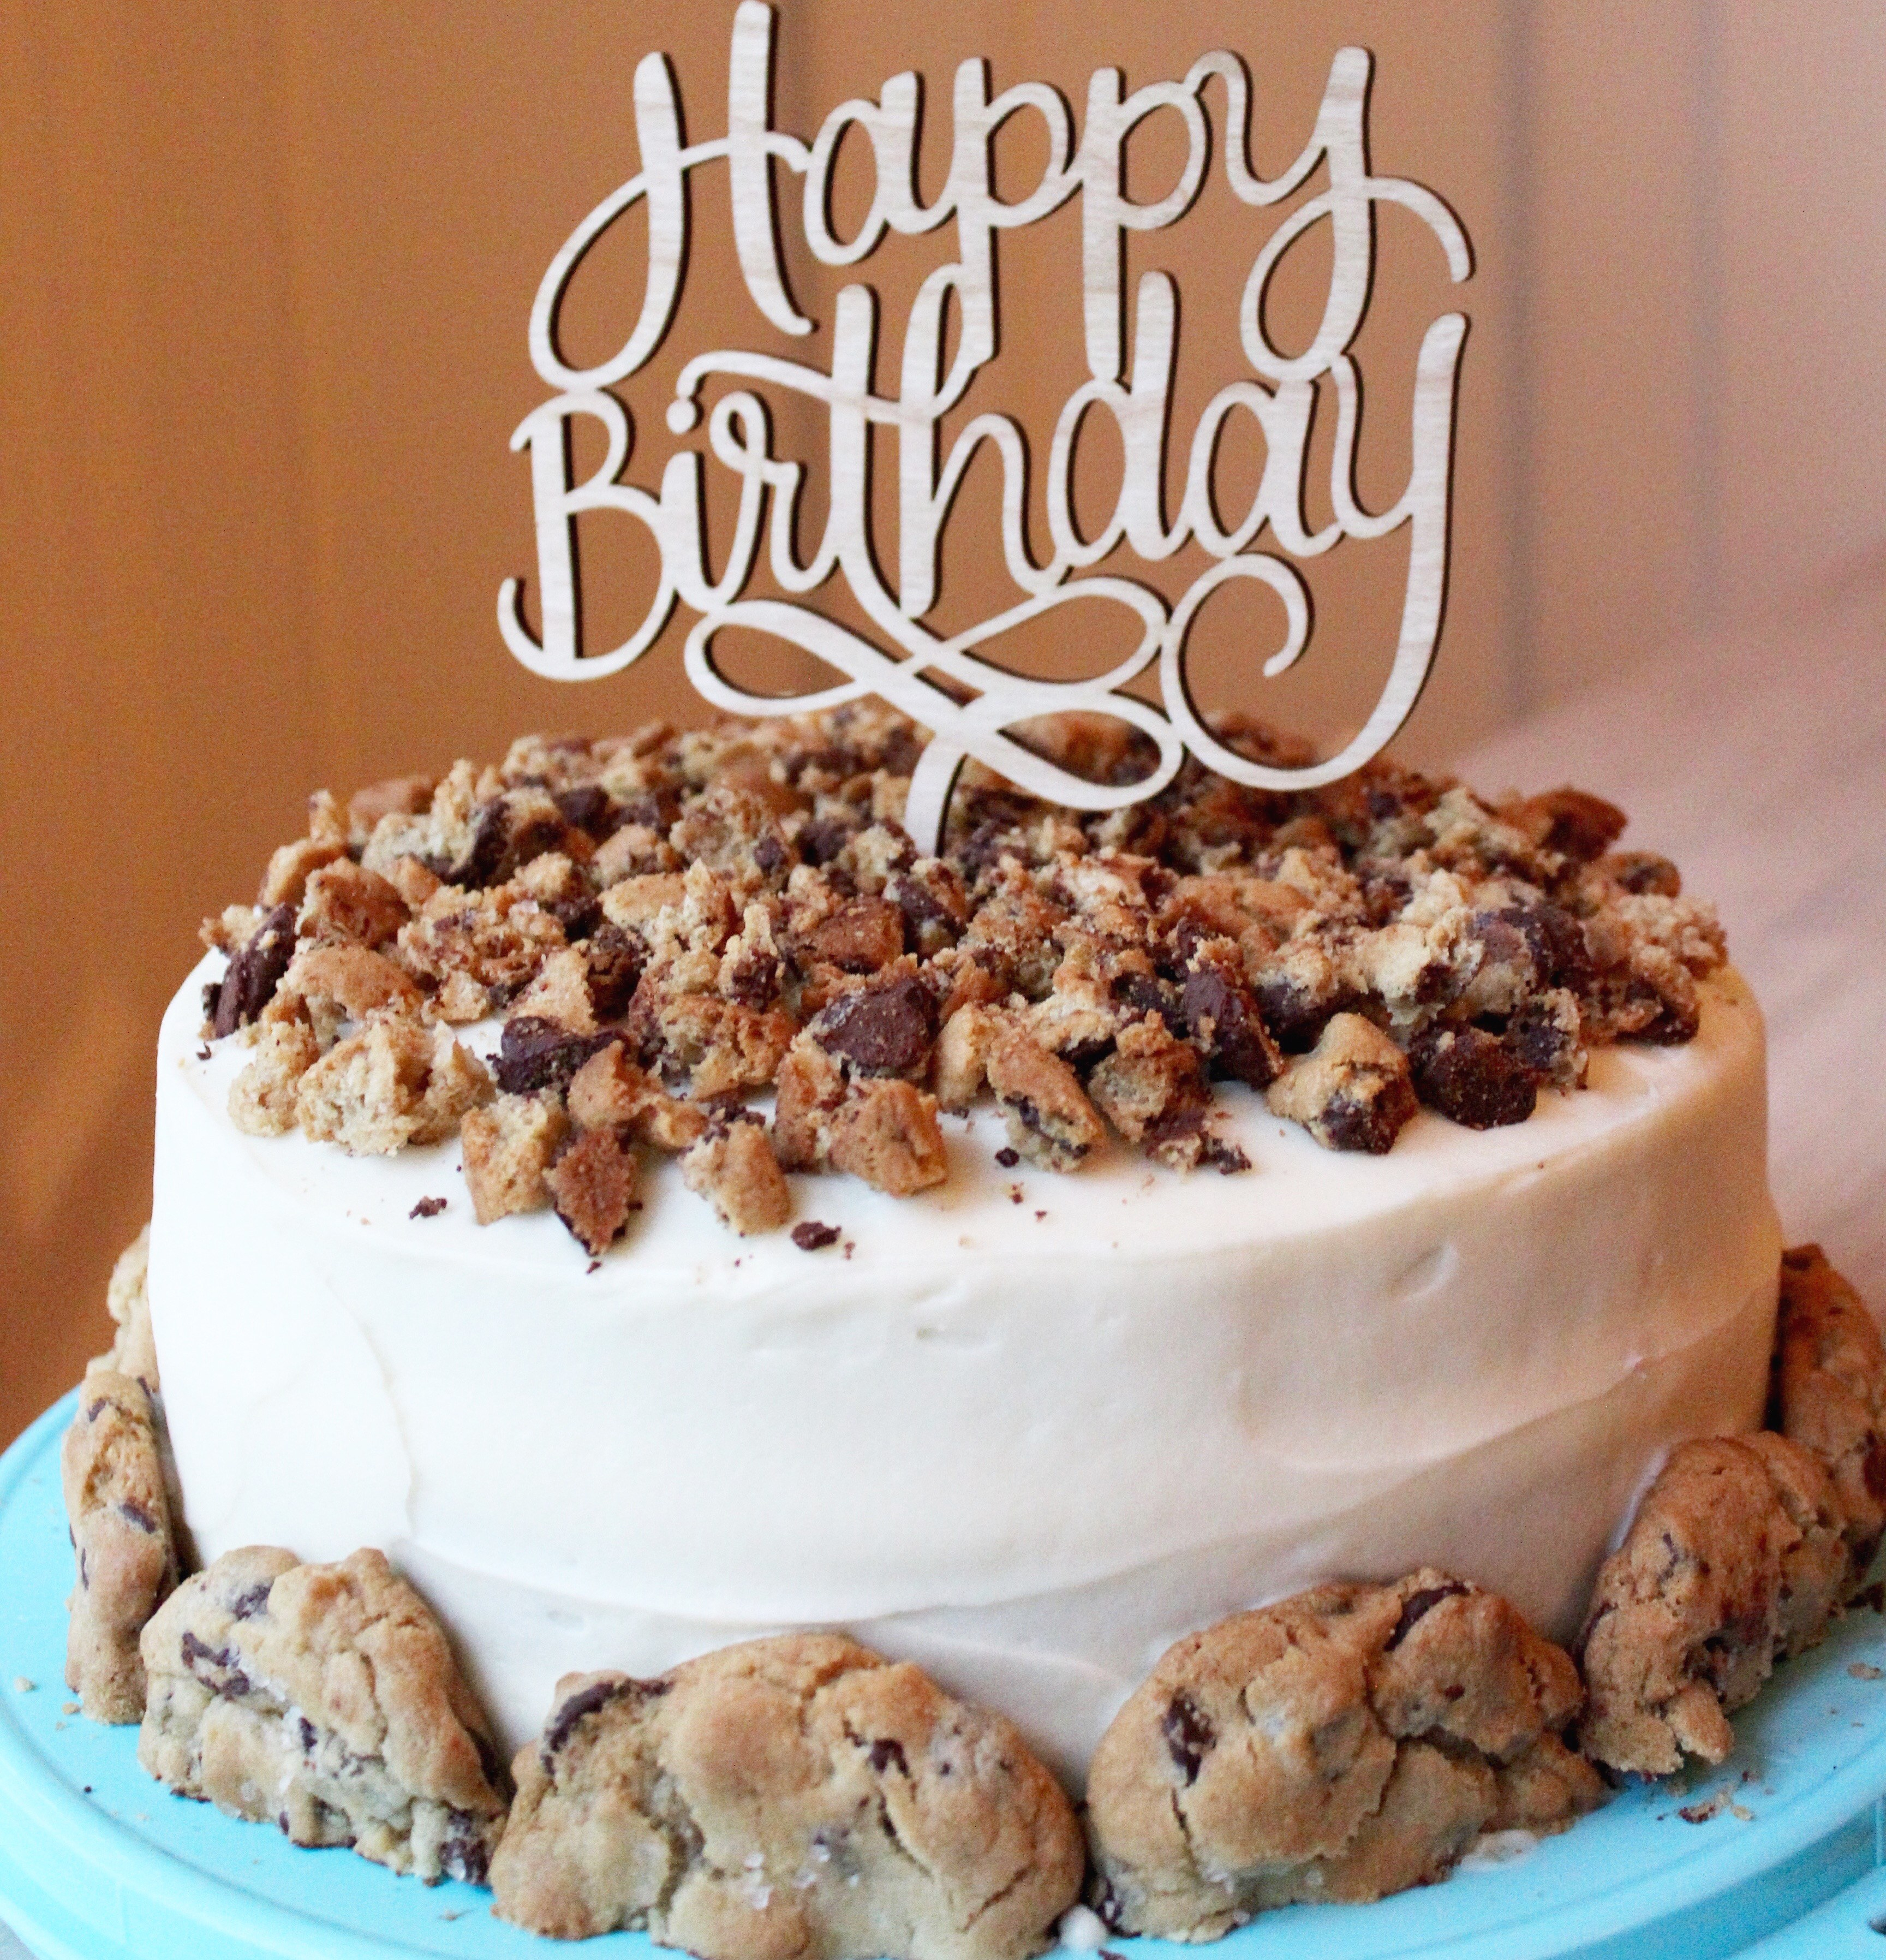 30 Great Photo of Chocolate Chip Cookie Birthday Cake